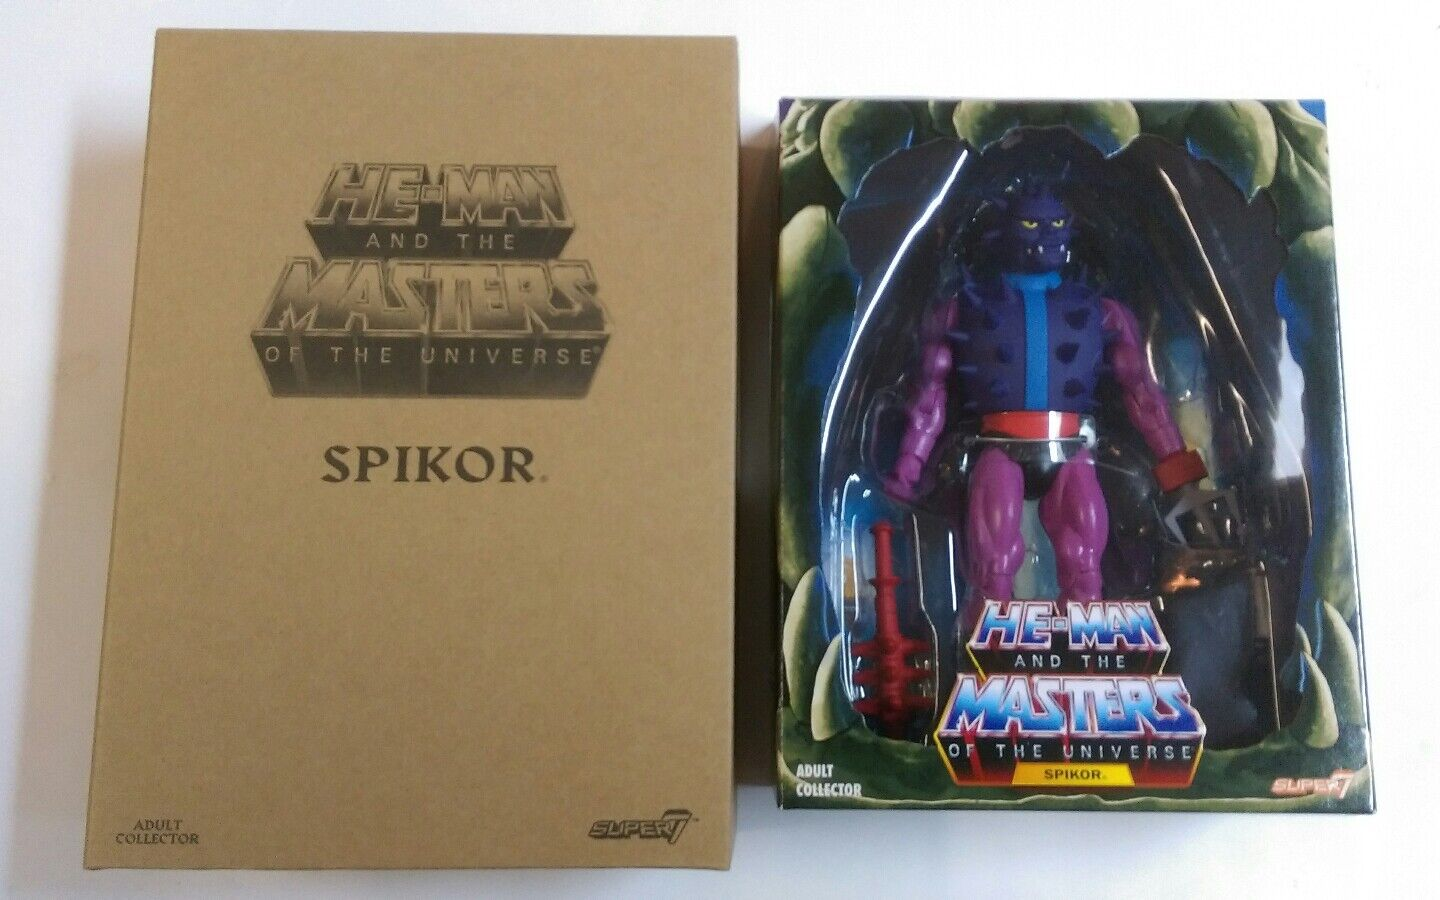 Masters Of The Universe Club grauskull SPIKOR Power-Con Exclusive  Super 7 MOTU